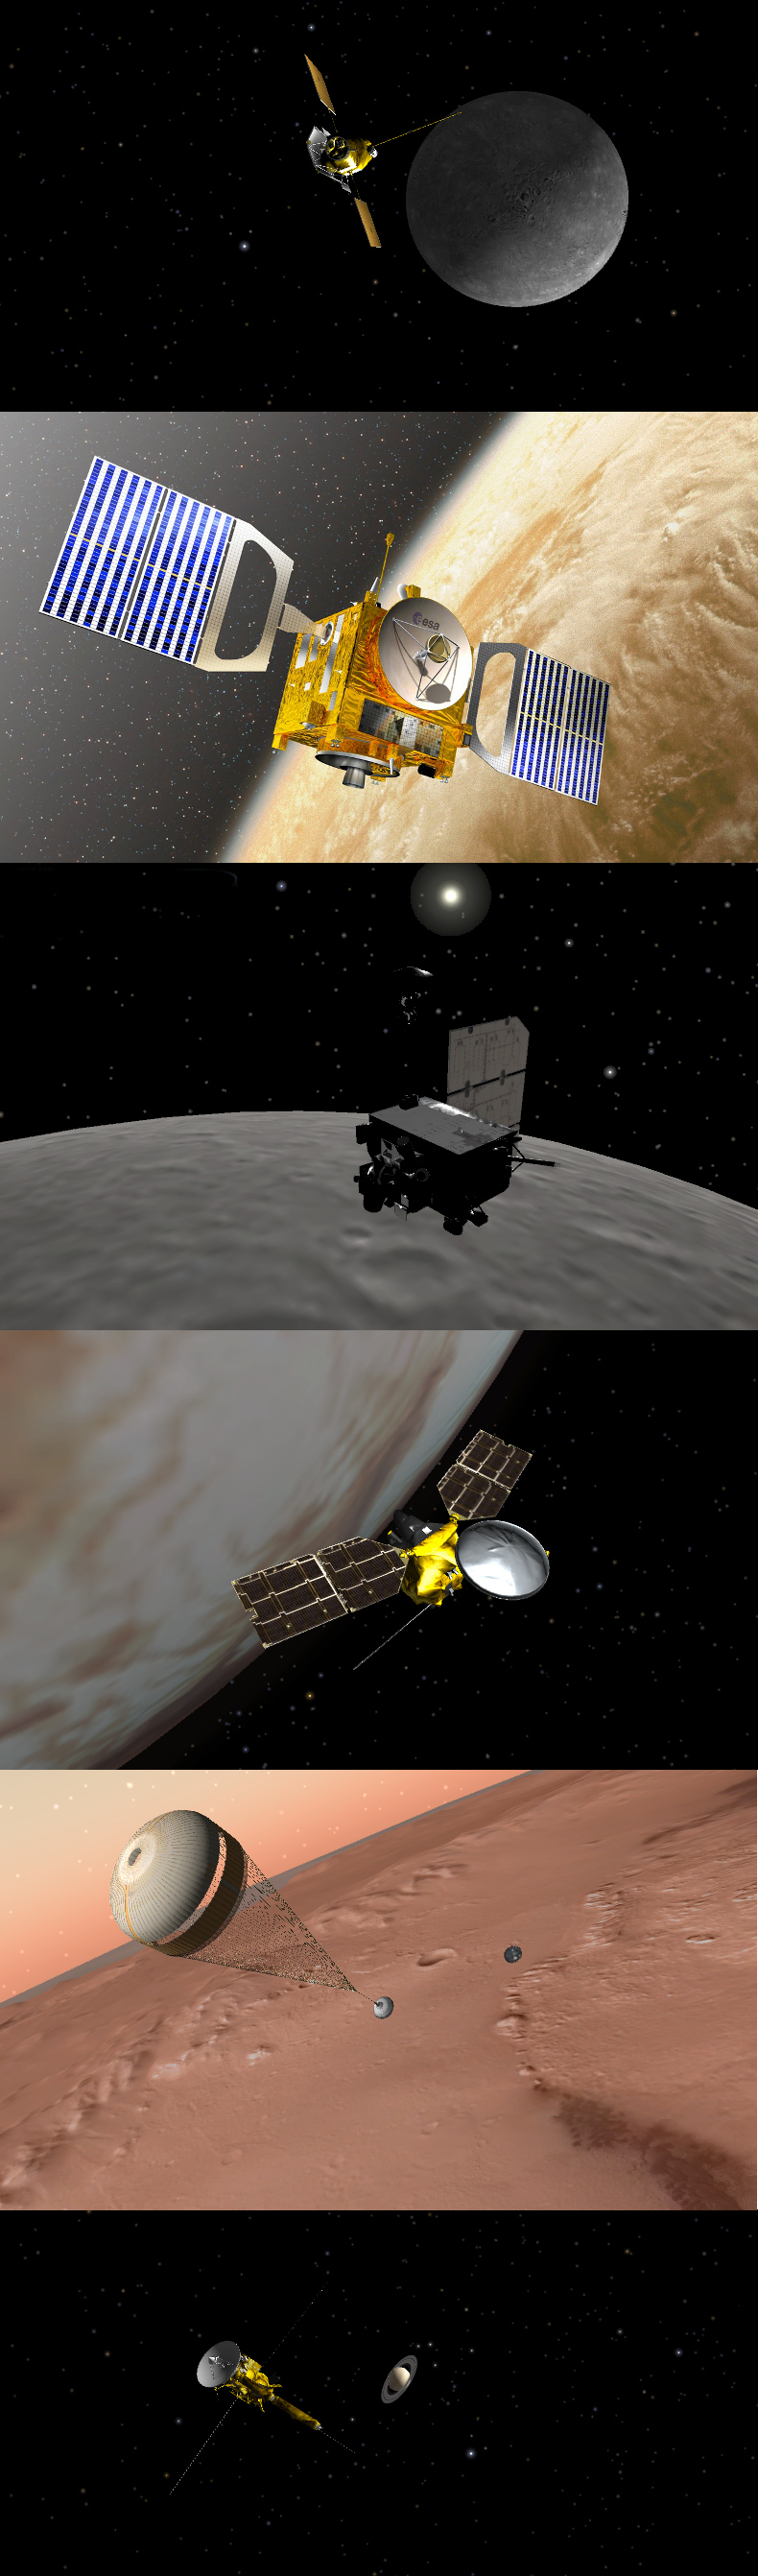 Six Spacecraft in August